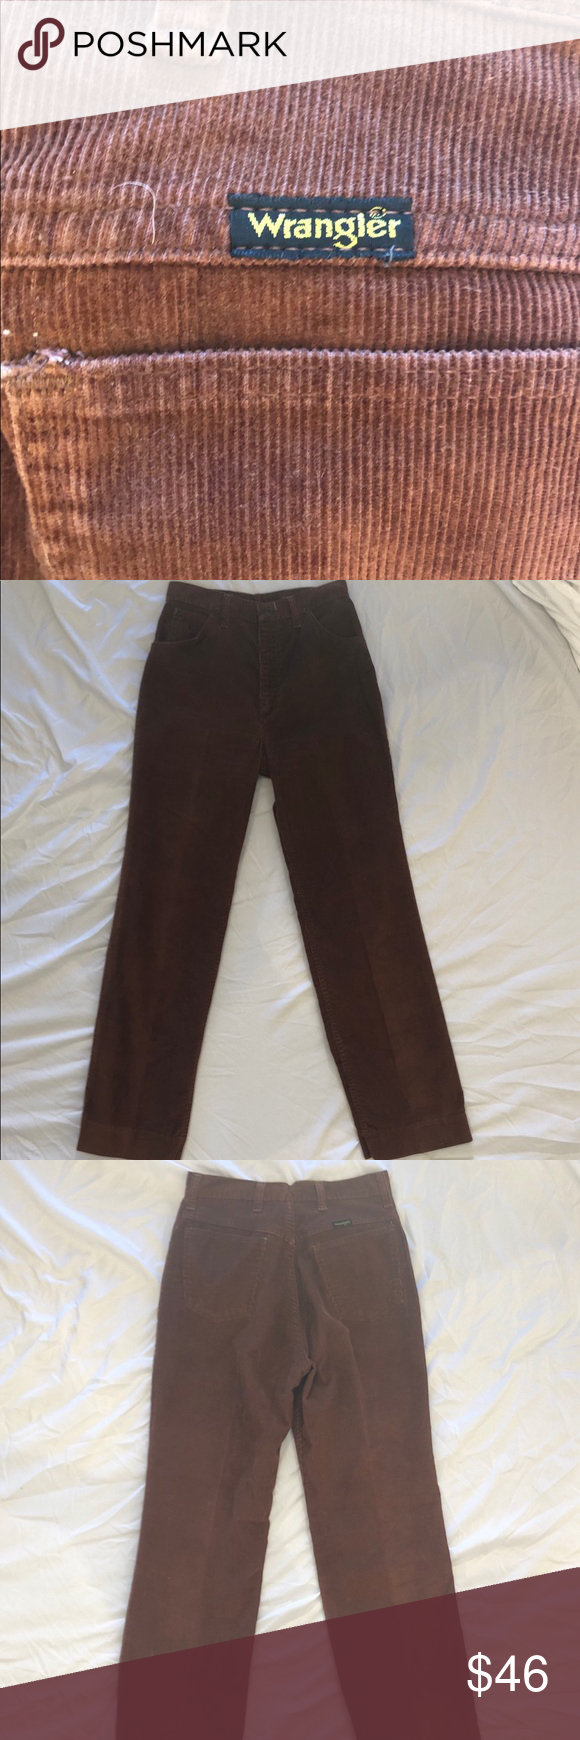 2667b5f4 Vintage Wrangler Corduroy Pants Cute unisex brown corduroy wrangler's.  Classic 5-pocket boot leg cut with zipper button closure. In great  condition!